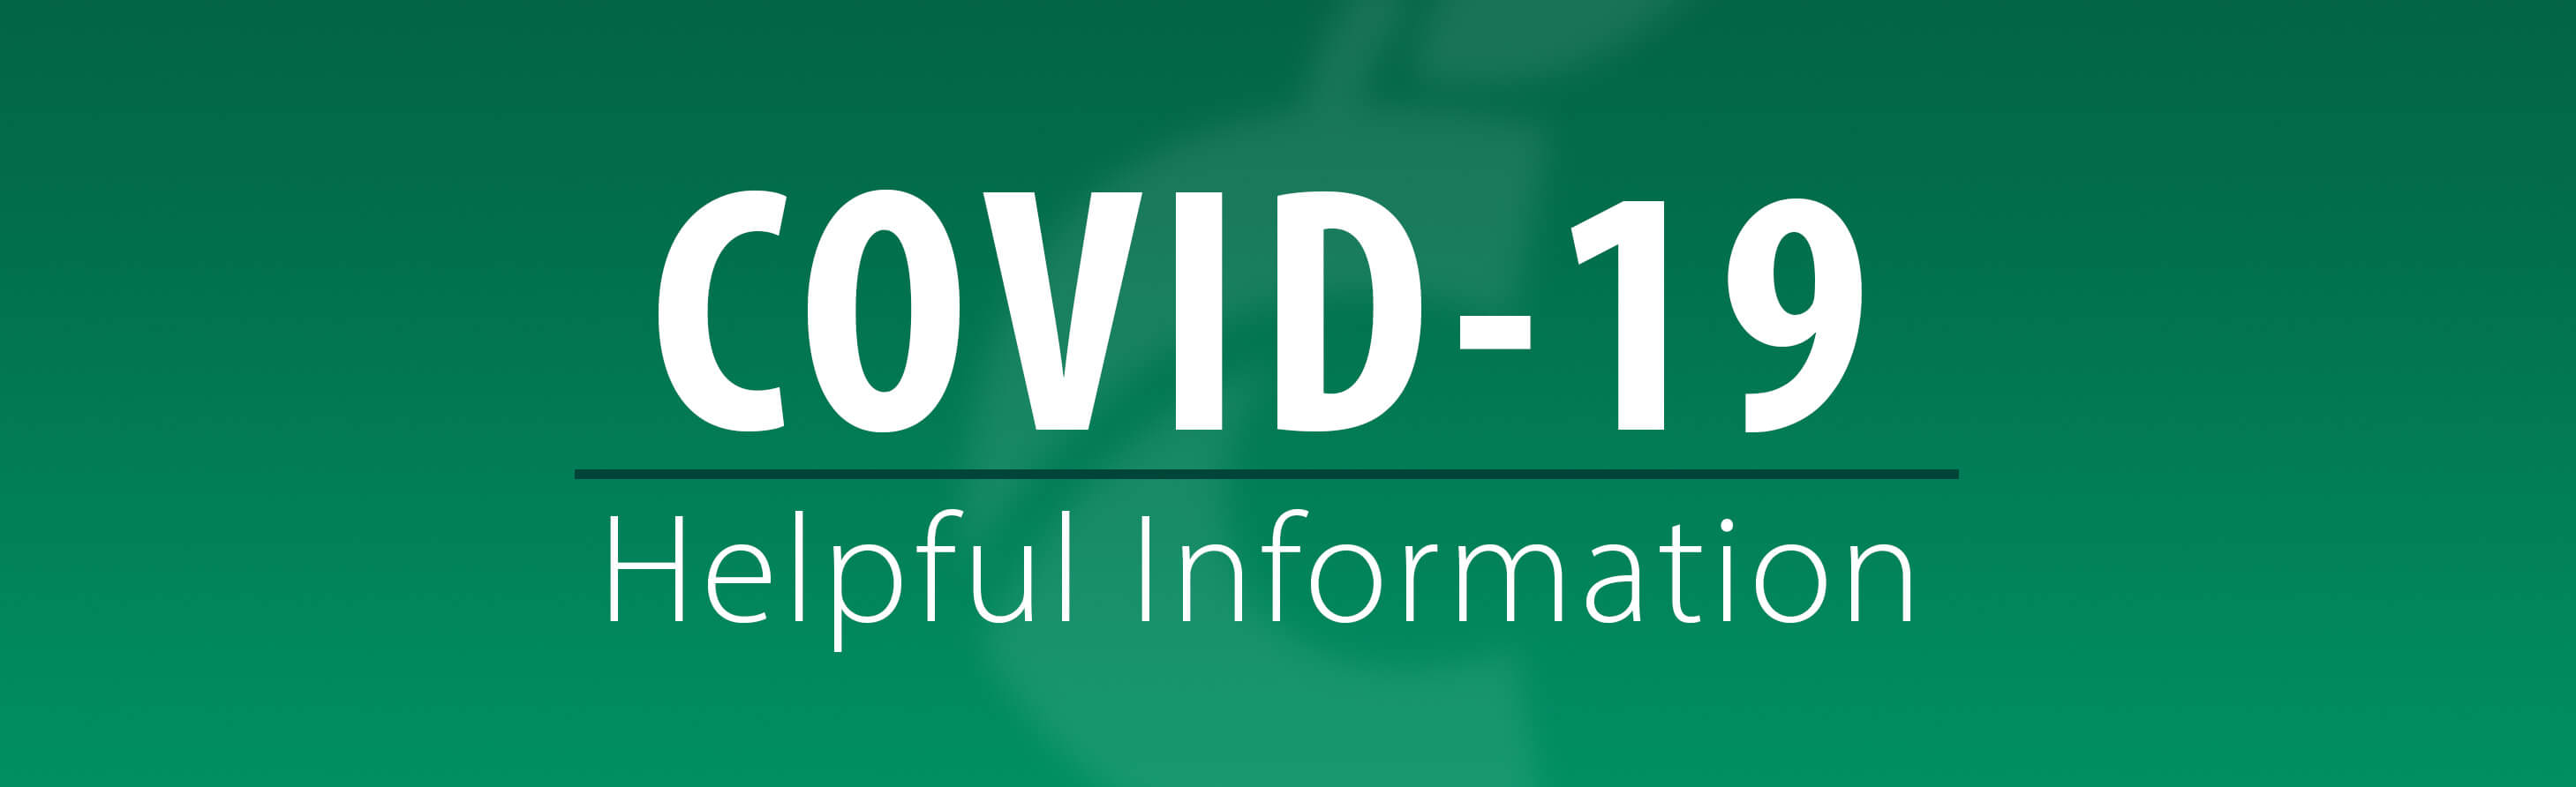 Helpful COVID-19 Information